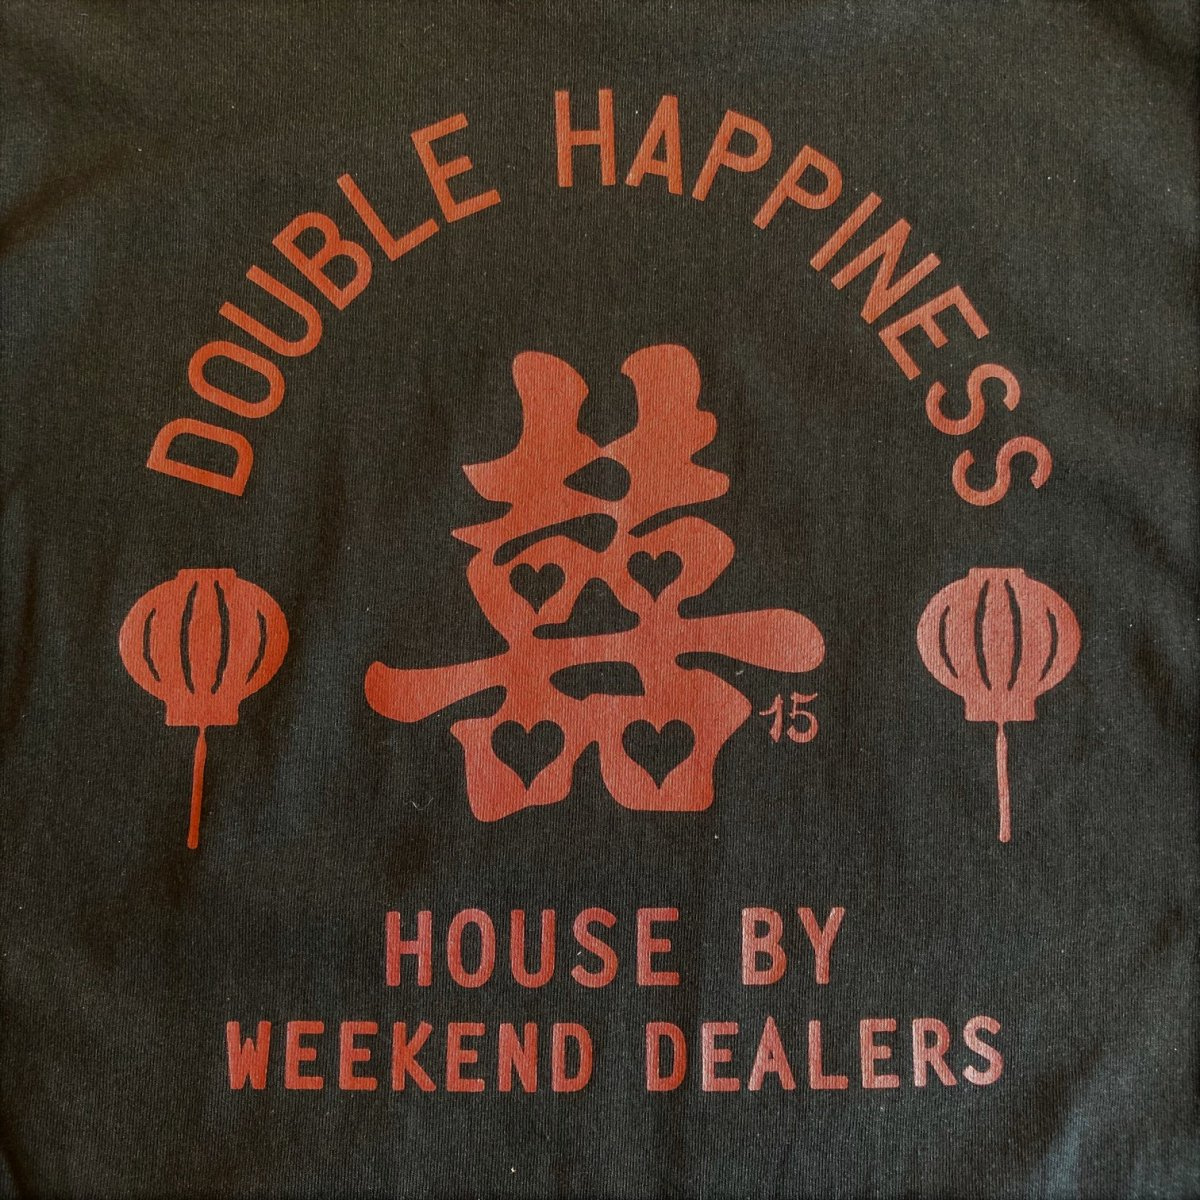 <img class='new_mark_img1' src='https://img.shop-pro.jp/img/new/icons3.gif' style='border:none;display:inline;margin:0px;padding:0px;width:auto;' />Black Weirdos × HOUSE by WEEKEND DEALERS 15th ANNIVERSARY Tee 【BLACK】